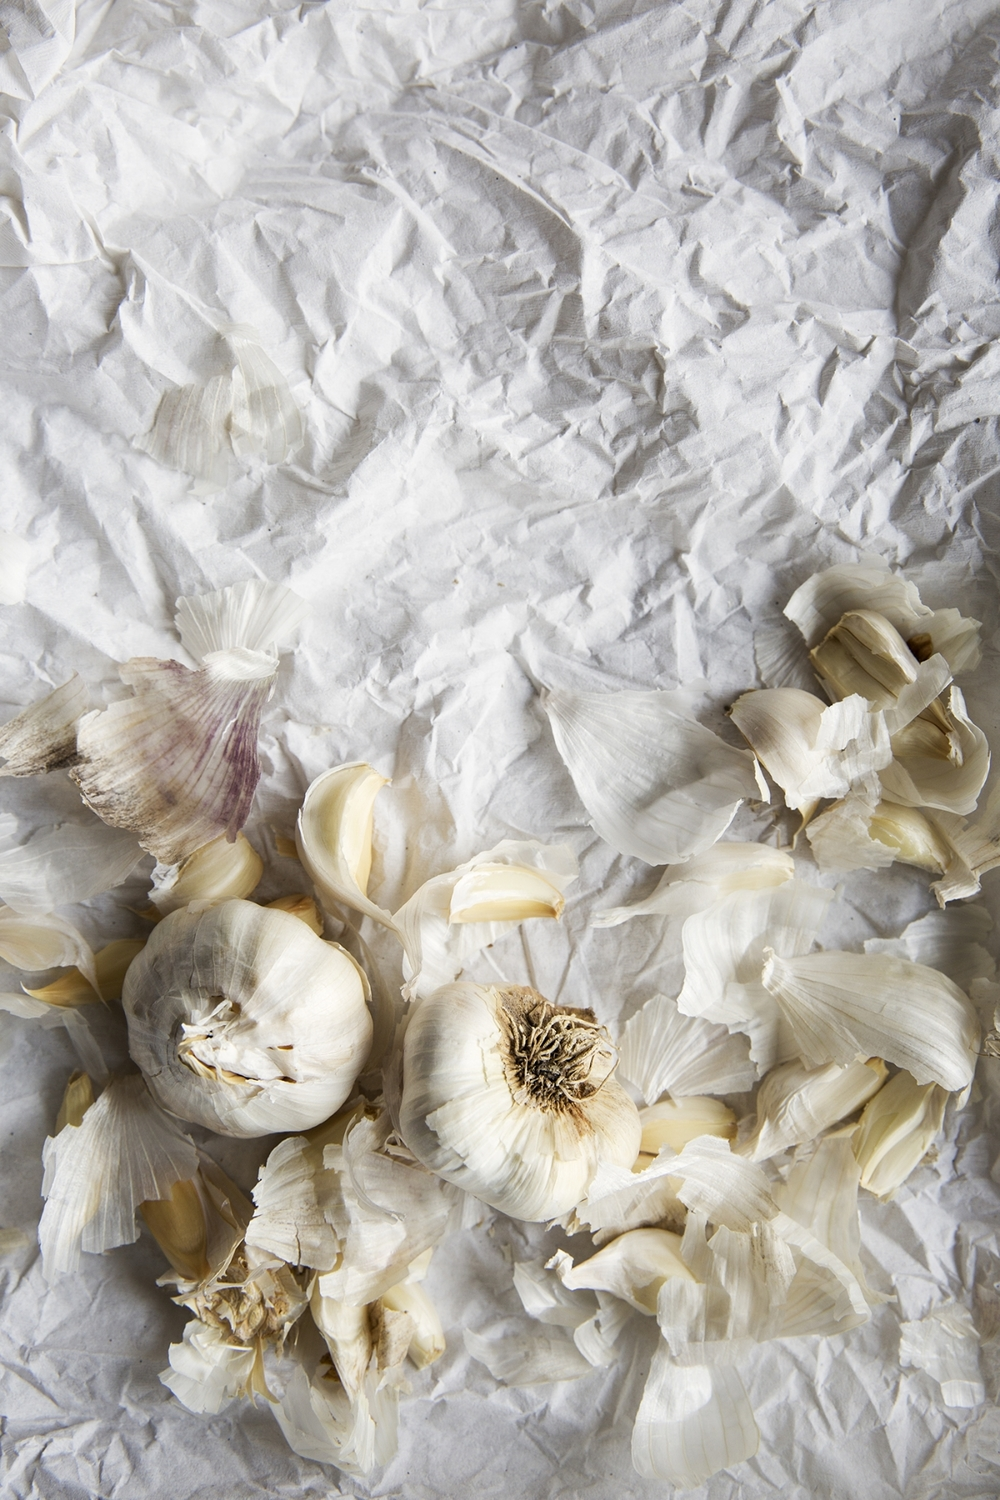 Burggraaf_Charity-Seattle_Food_Photographer-Garlic.jpg